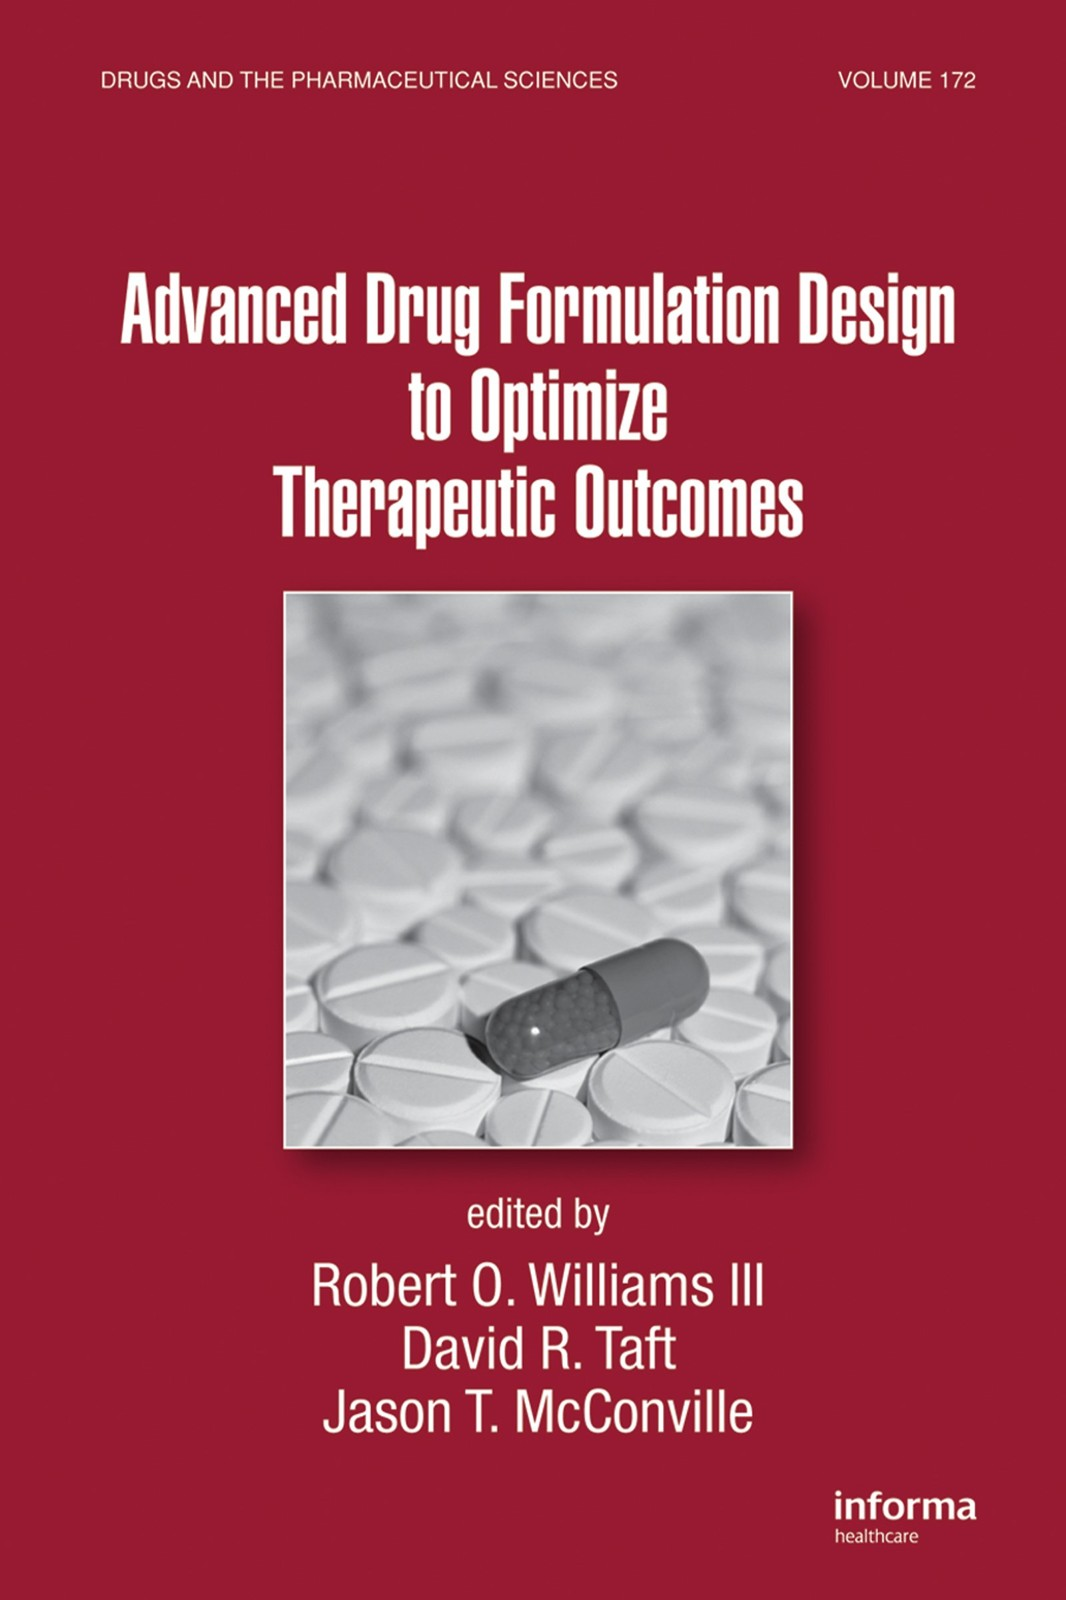 advanced drug formulation and design Read online advanced drug formulation design to optimize therapeutic outcomes book that writen by robert o williams in english language release on 2007-09-25, this book has 536 page count that attach valuable information with easy reading structure.